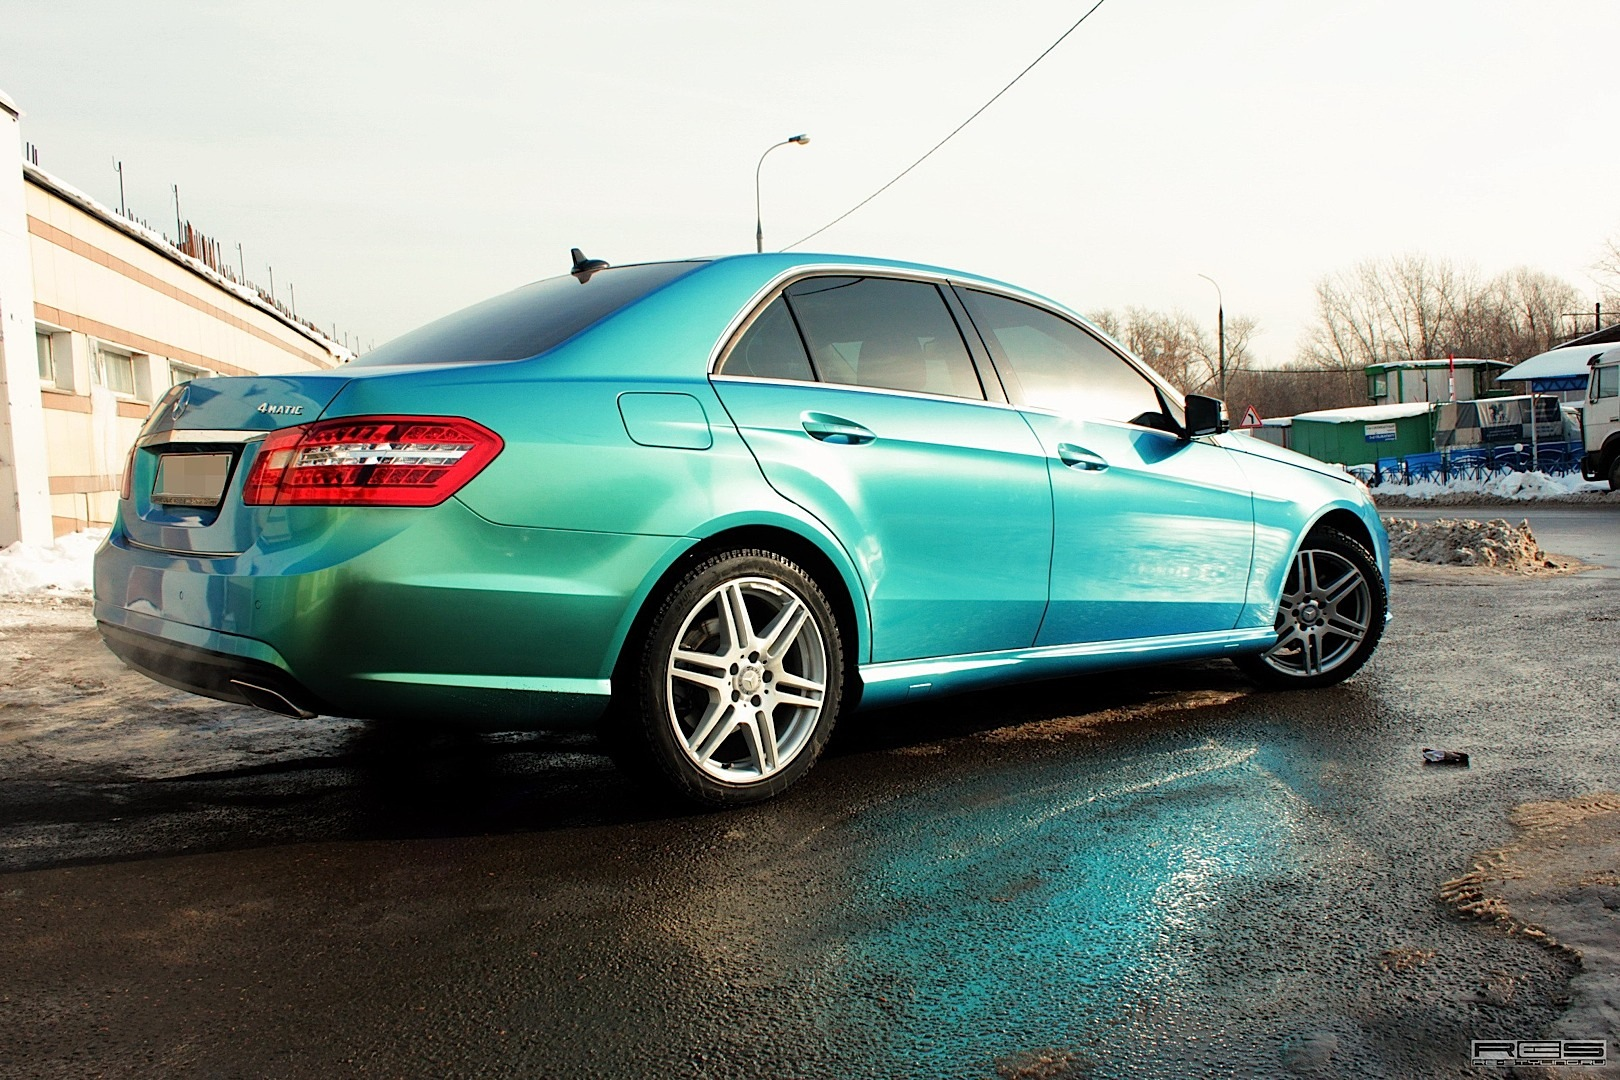 Blue Green Chameleon Wrap On Mercedes E Class Autoevolution